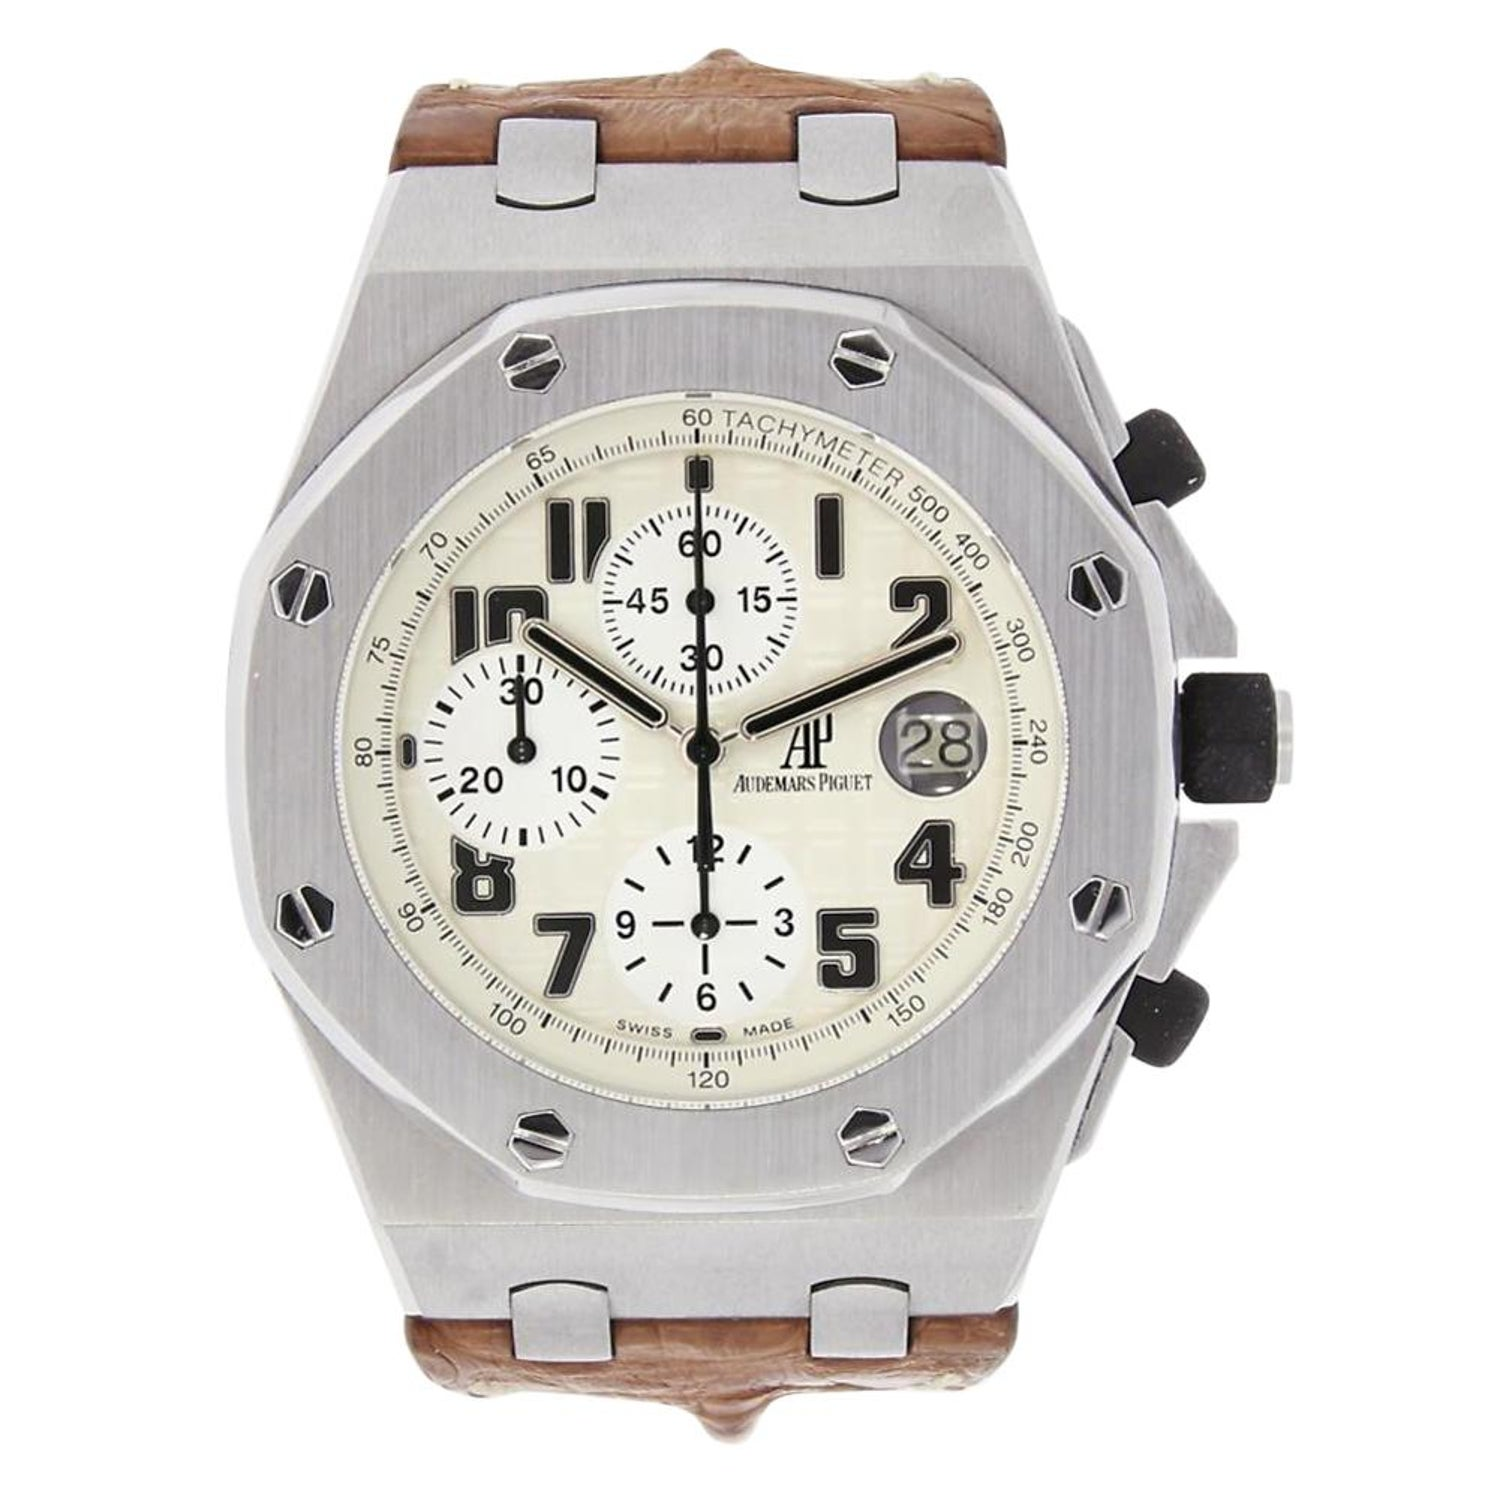 Audemars Piguet Royal Oak Chronograph Safari Watch 26170st Oo D091cr 01